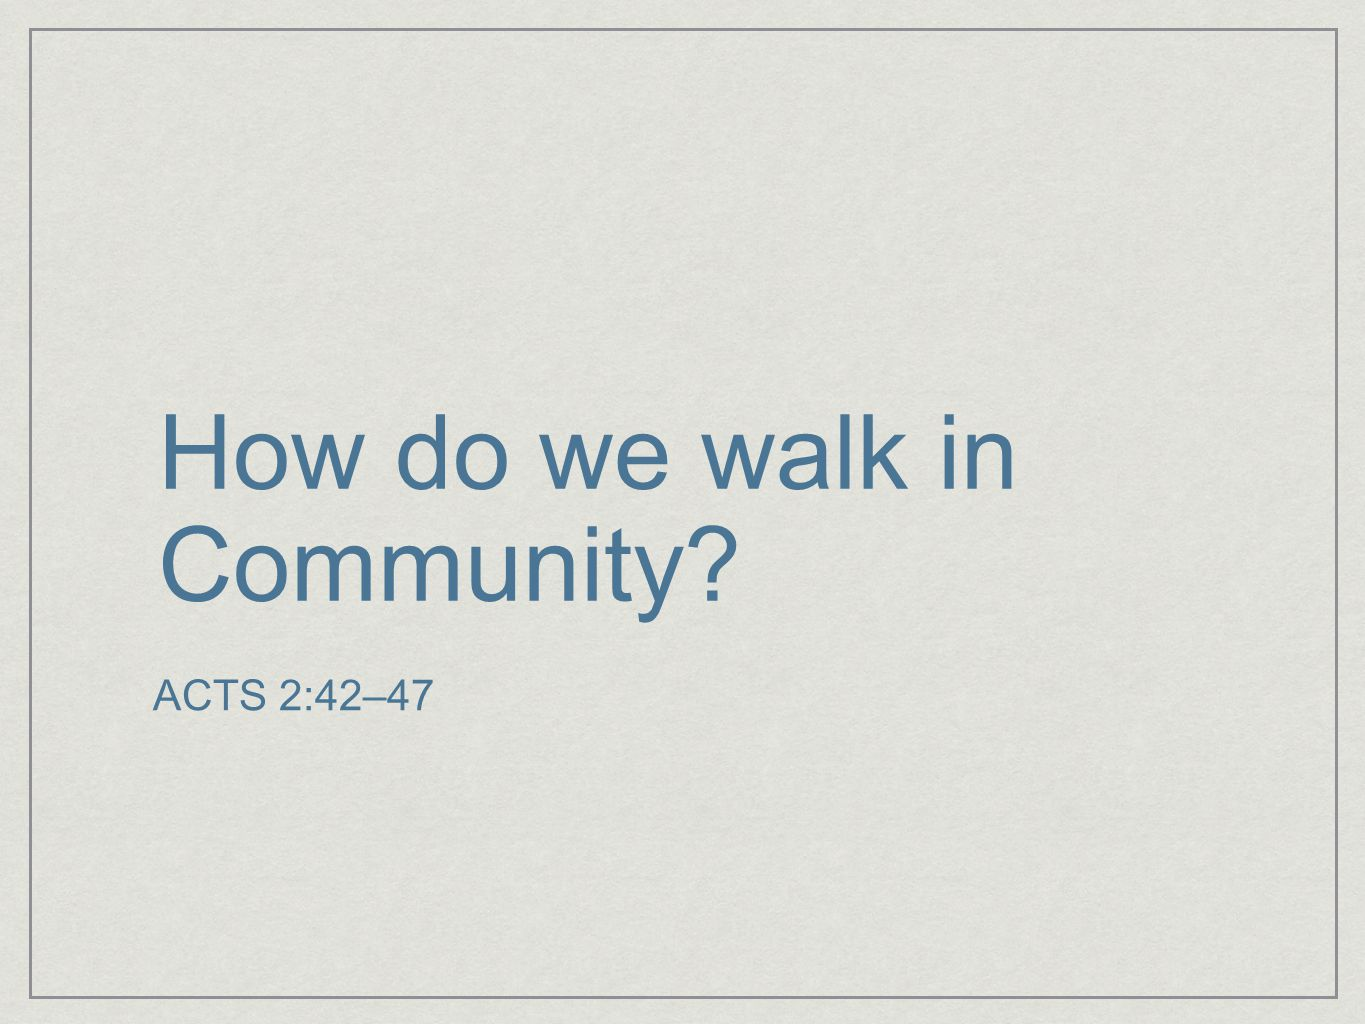 How do we walk in Community